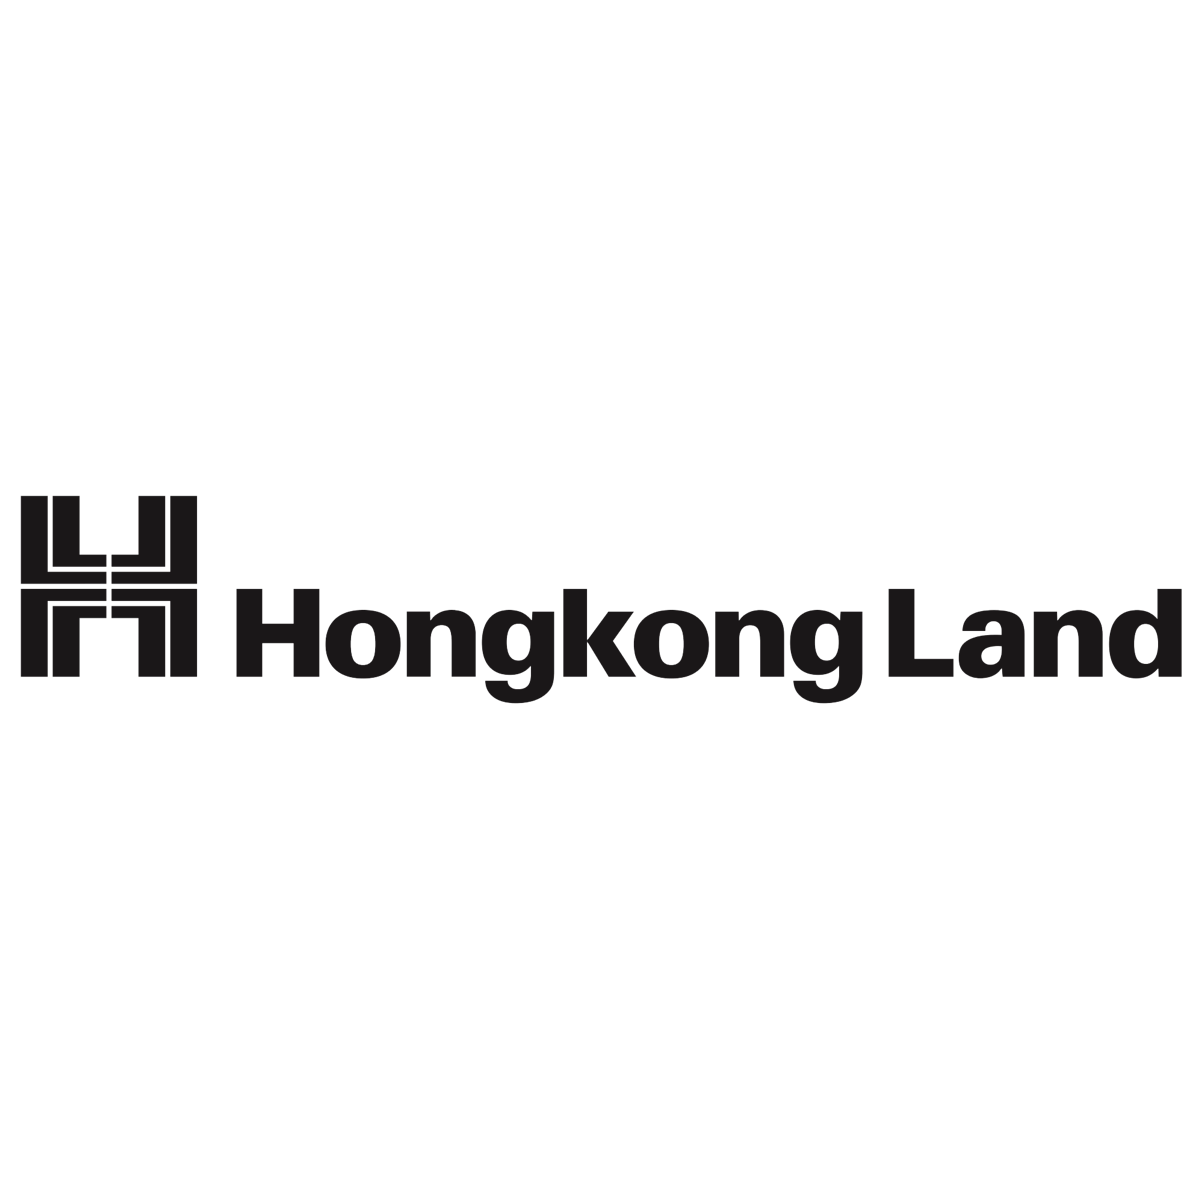 Hongkong Land Holdings Ltd - CIMB Research 2018-03-08: Central Assets Selling For Only Half Price